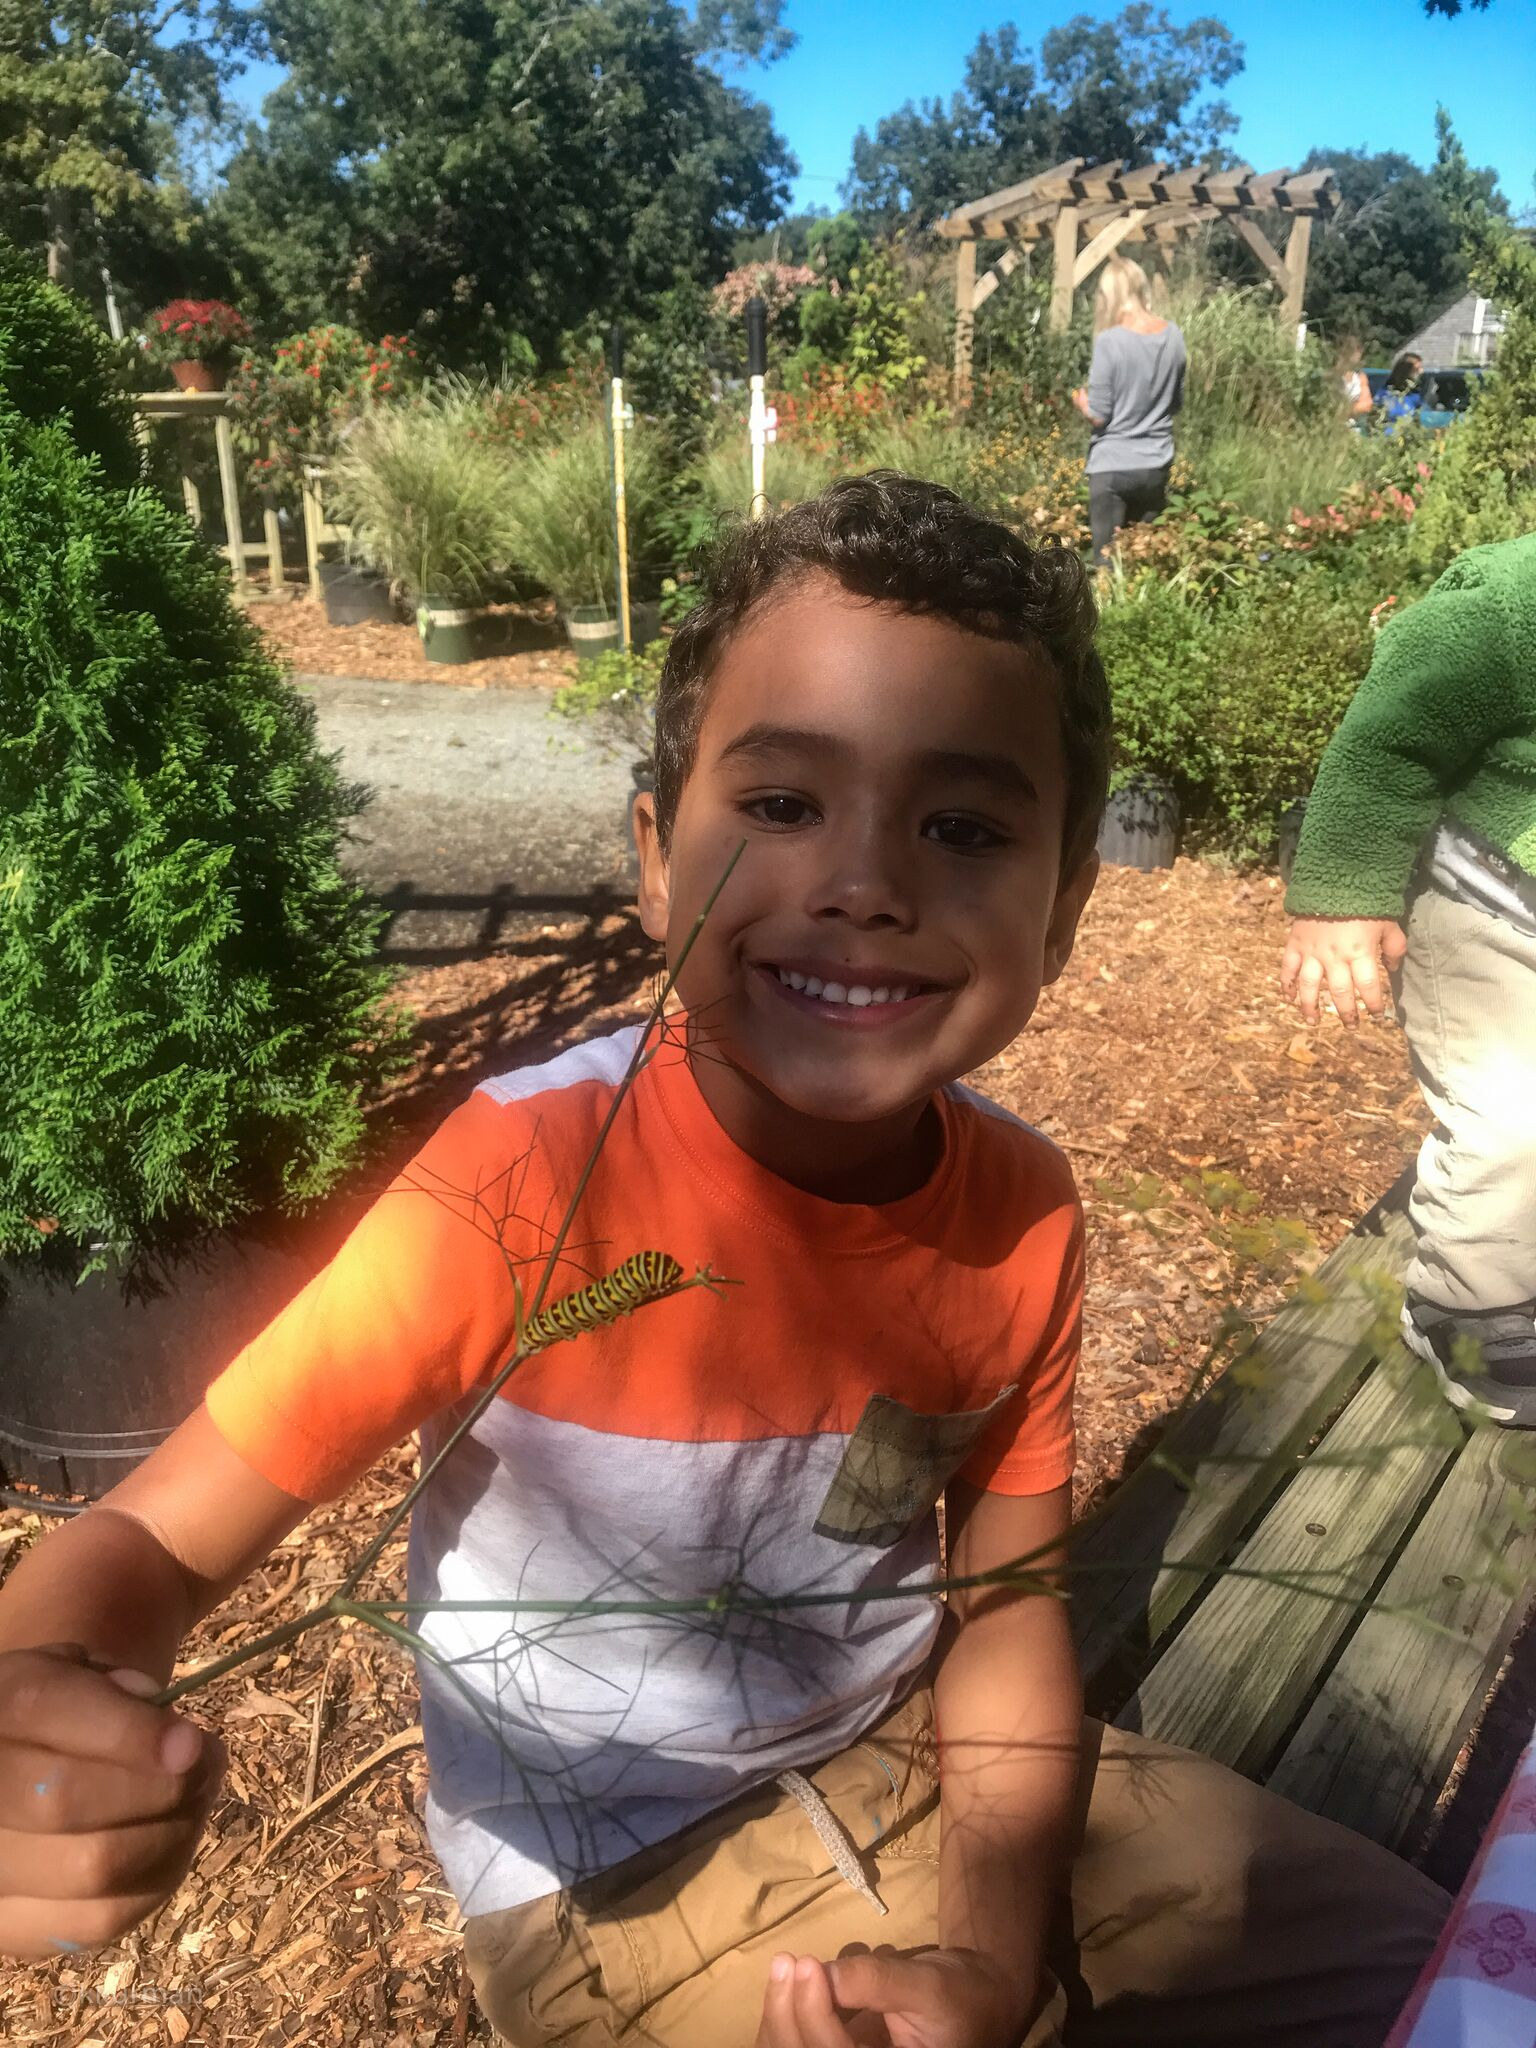 One of our guests, Bryan Rosa enjoying a visit with a Monarch caterpillar